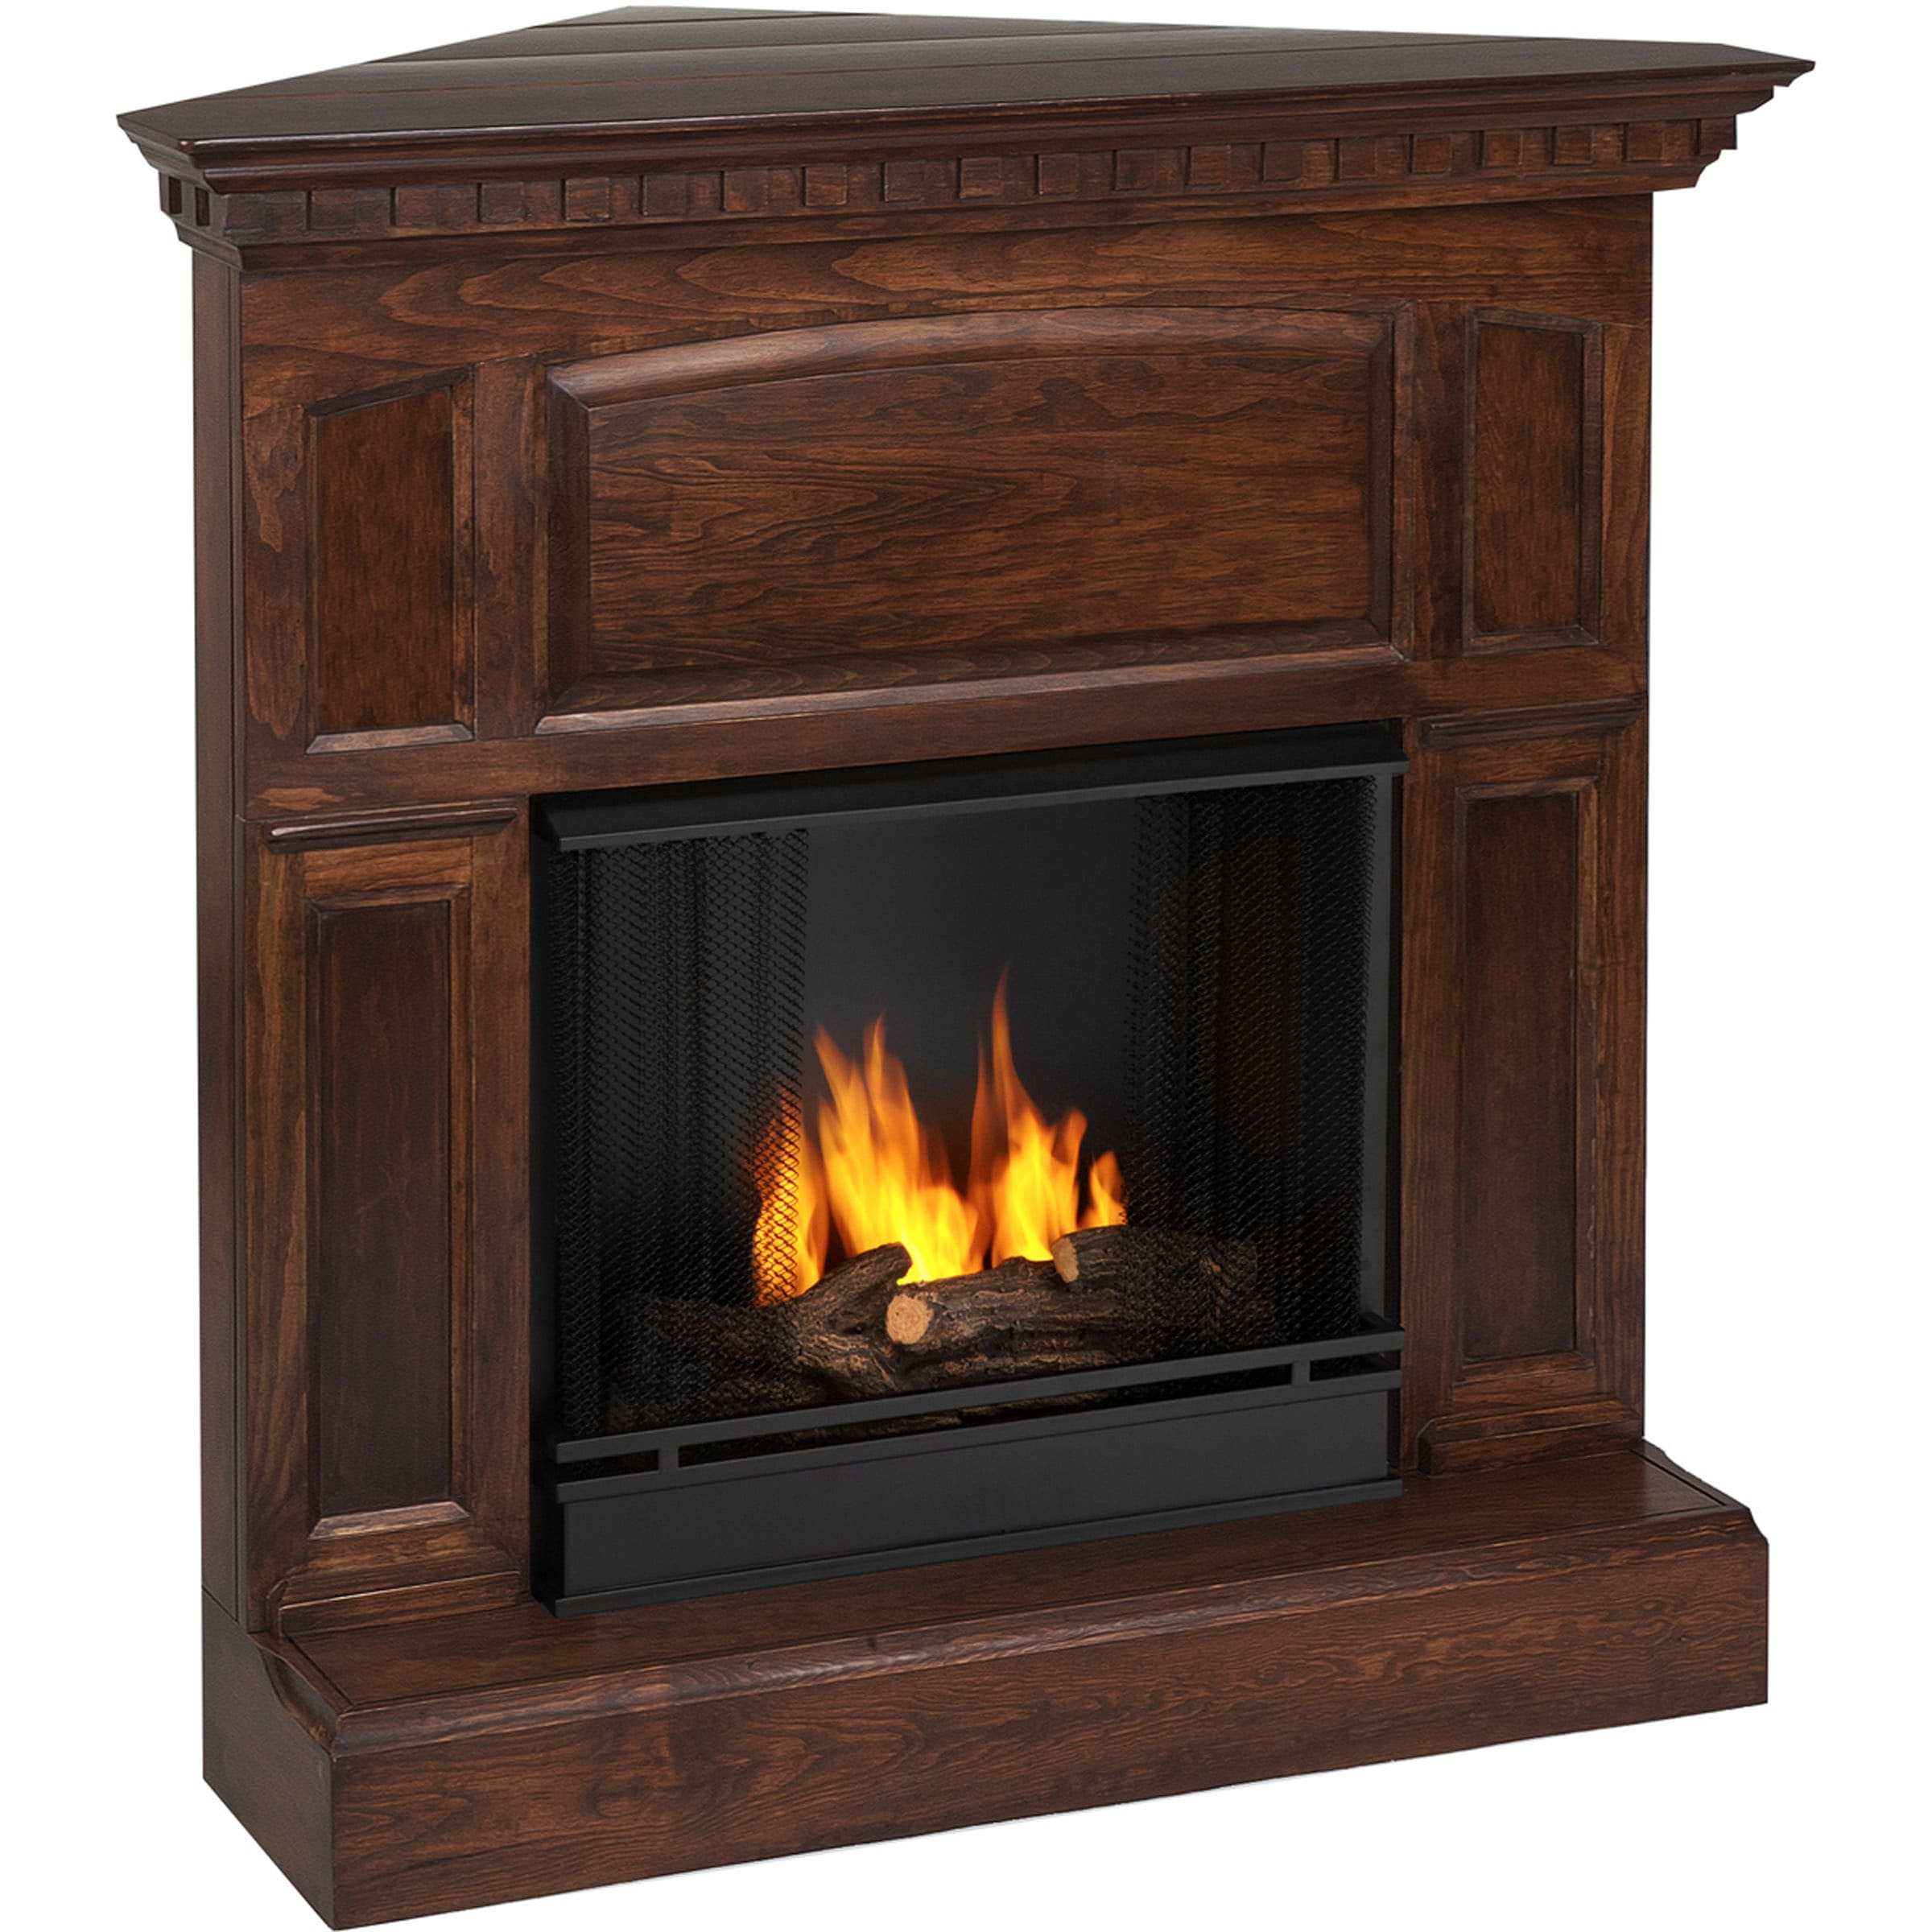 real flame heritage corner gel fuel mahogany fireplace free shipping today. Black Bedroom Furniture Sets. Home Design Ideas